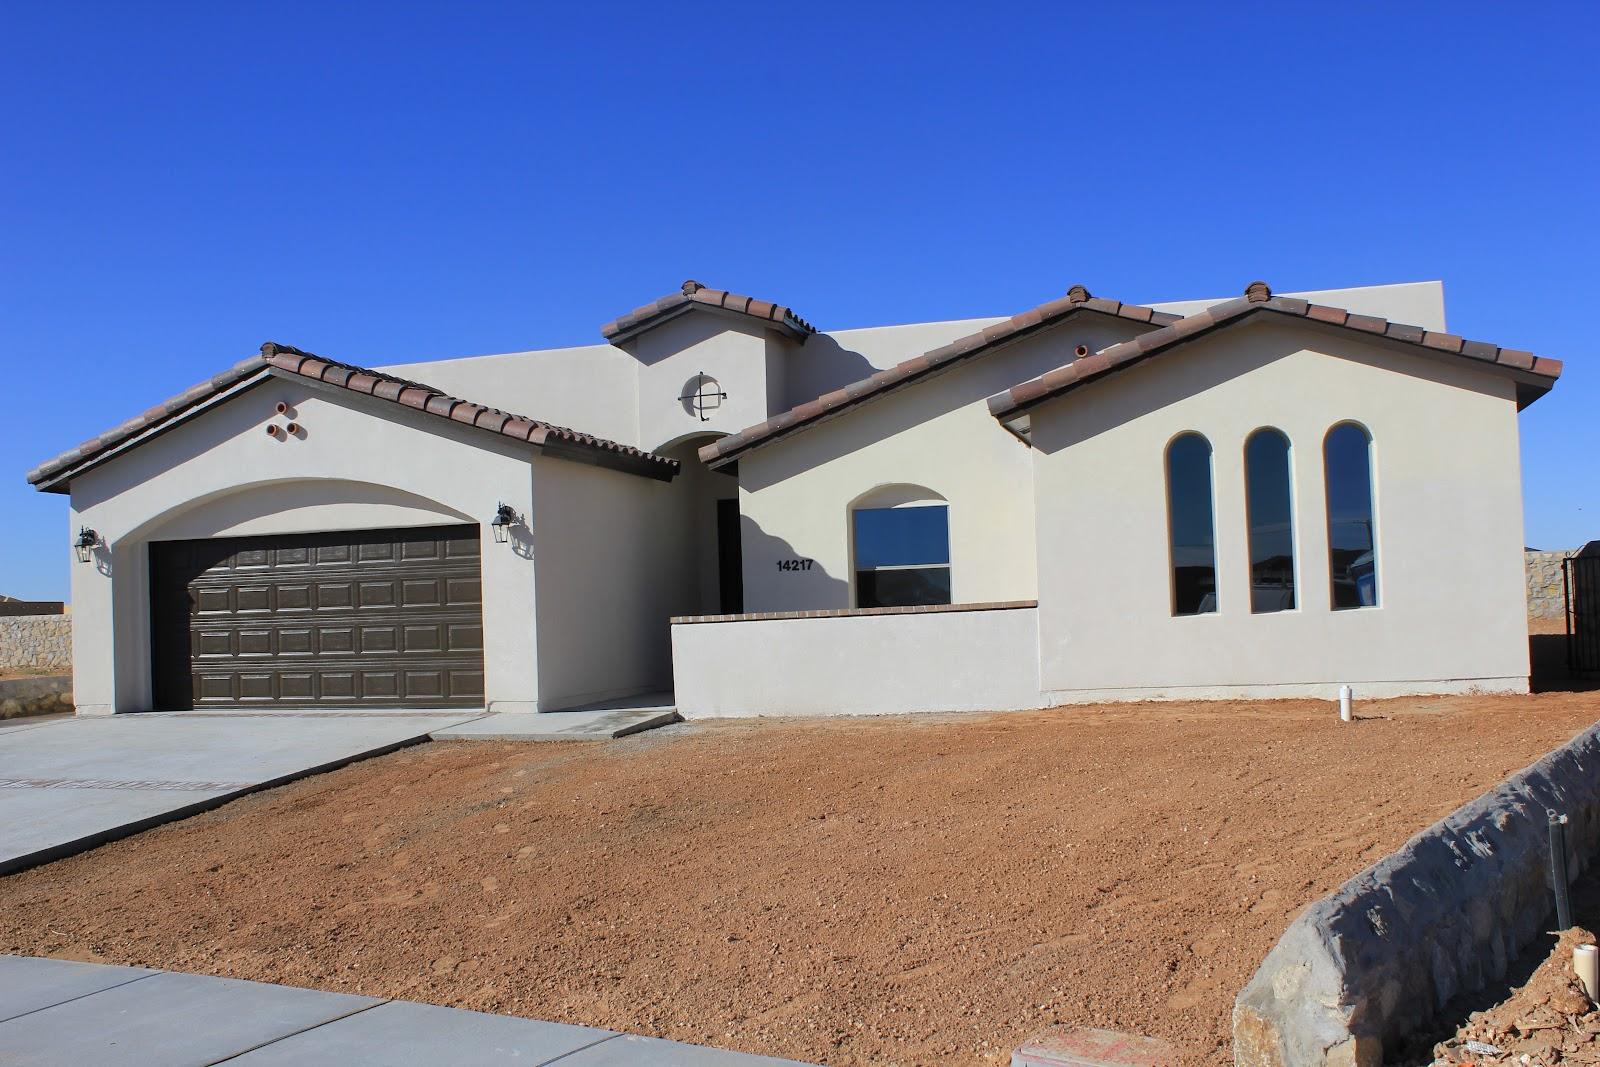 palo verde homes news and notes about us and model home rh paloverdehome blogspot com verdi house verdi home improvements reviews